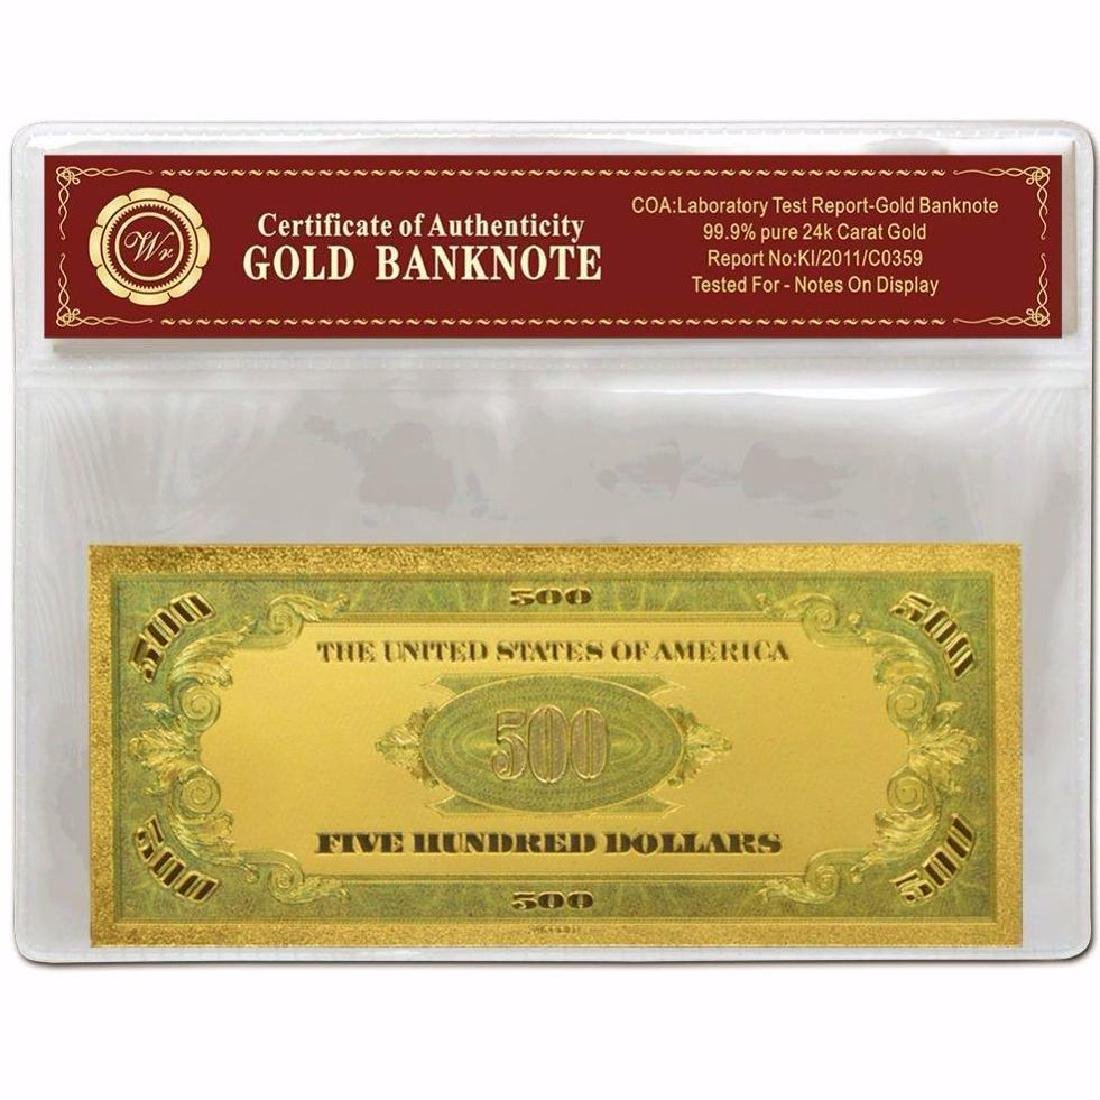 USA $500 24K Gold Clad Banknote - 2